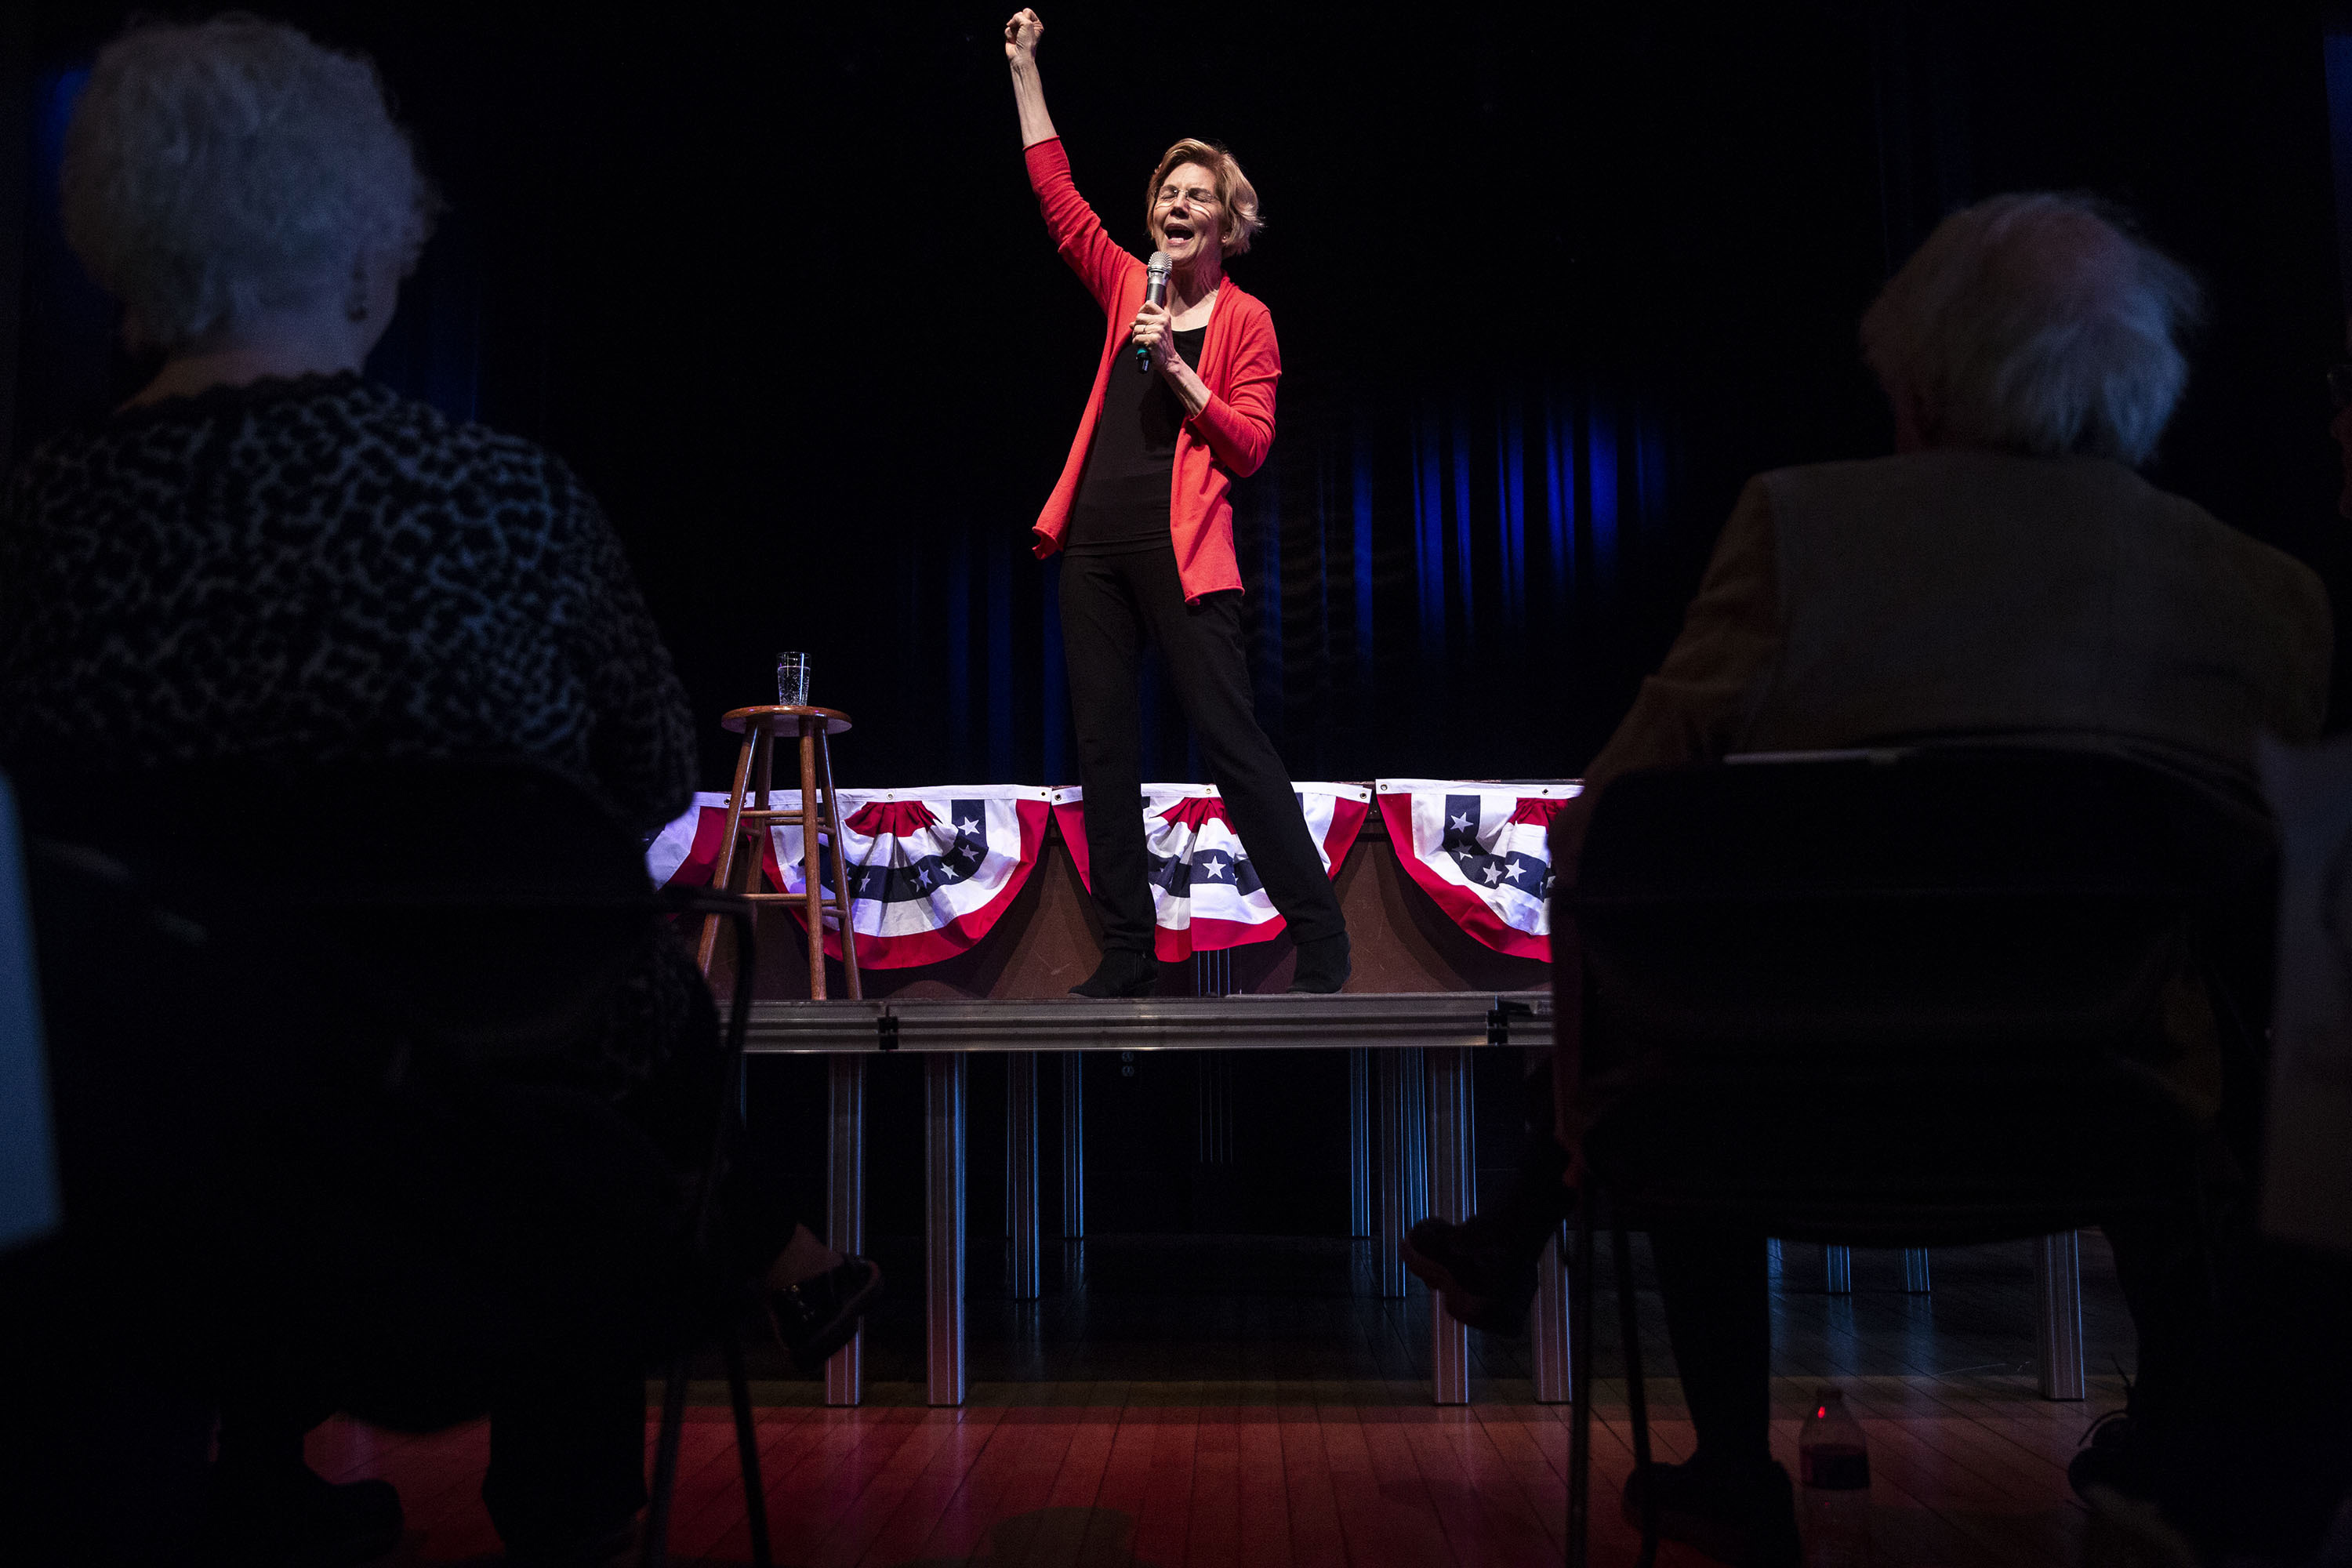 Elizabeth Warren's fearless campaign is sagging in the polls. She should keep at it.